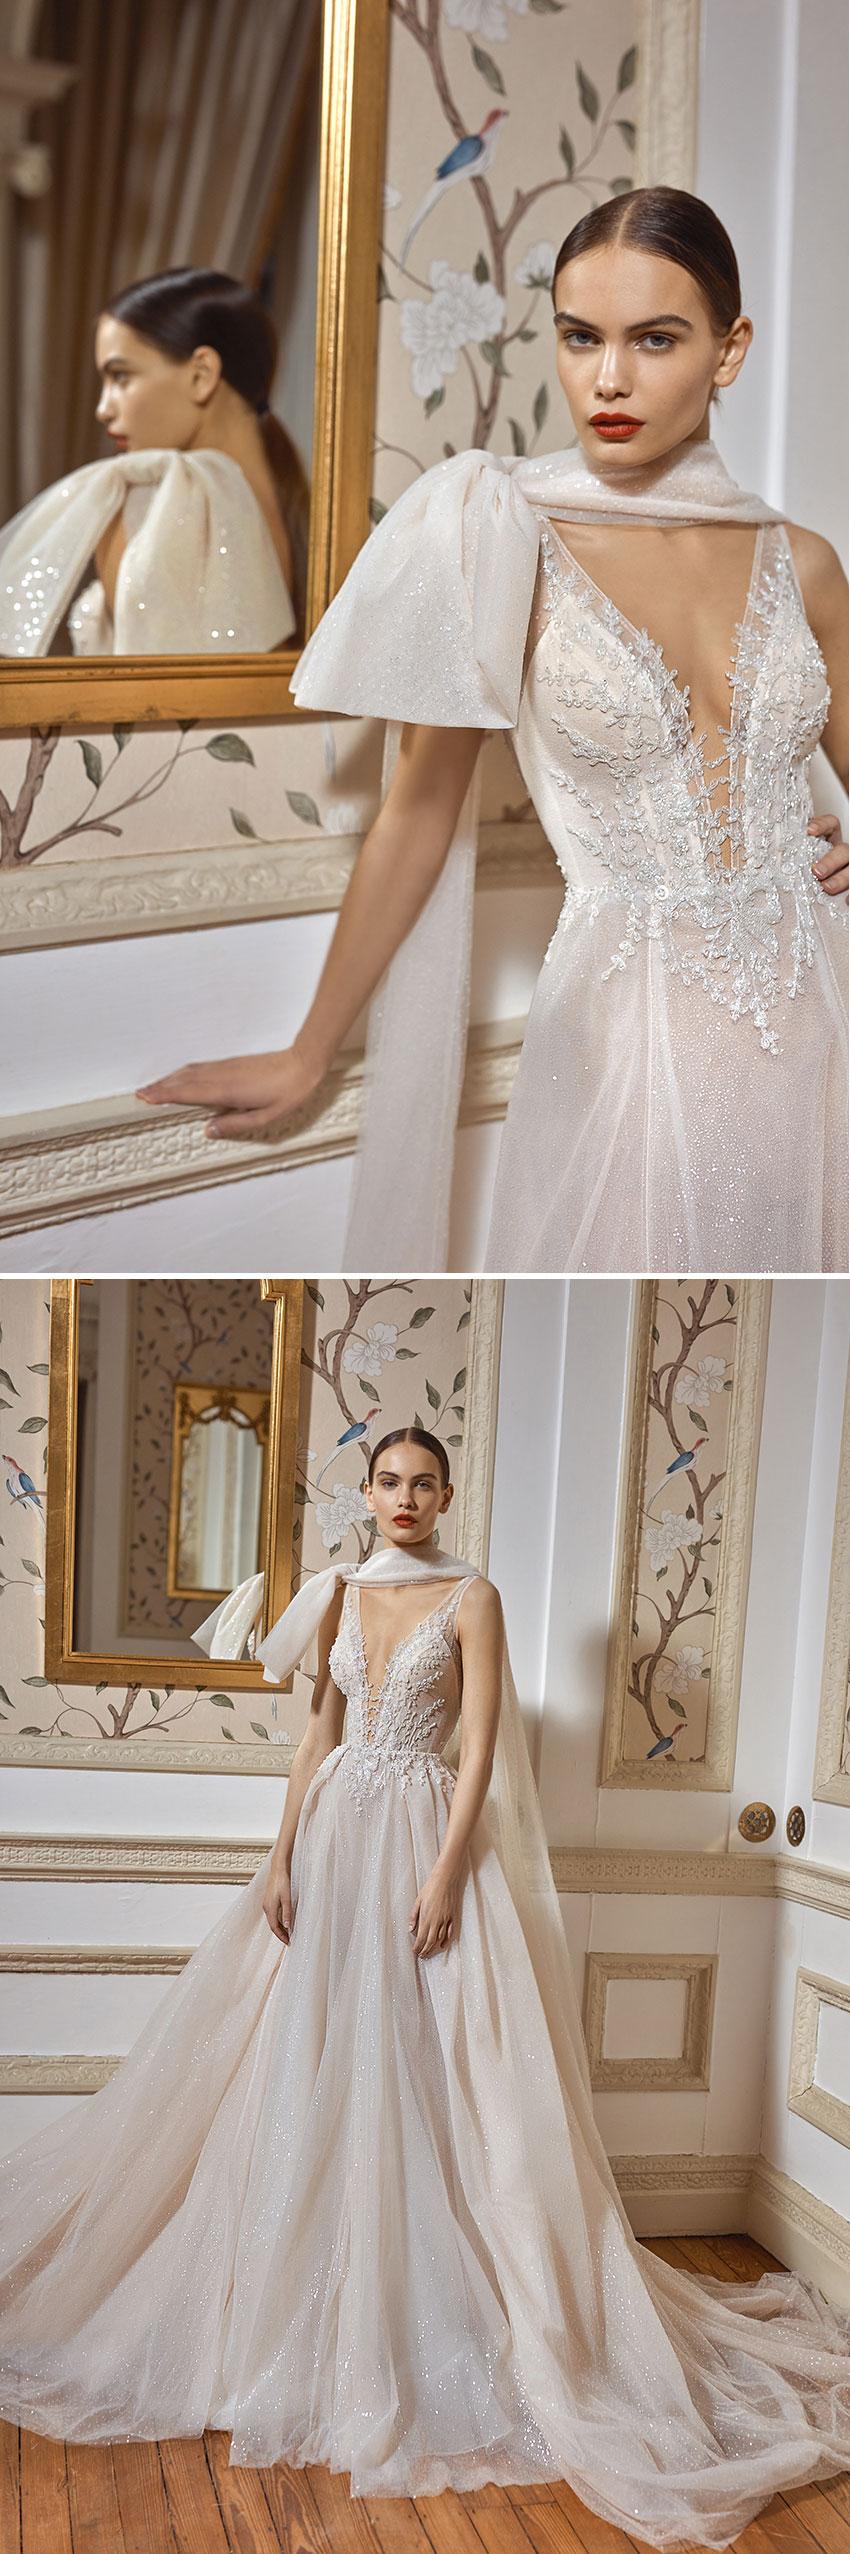 Galia Lahav Fall Winter 2021 Couture collection features capes and dramatic oversized bows featured in Perfect Wedding magazine